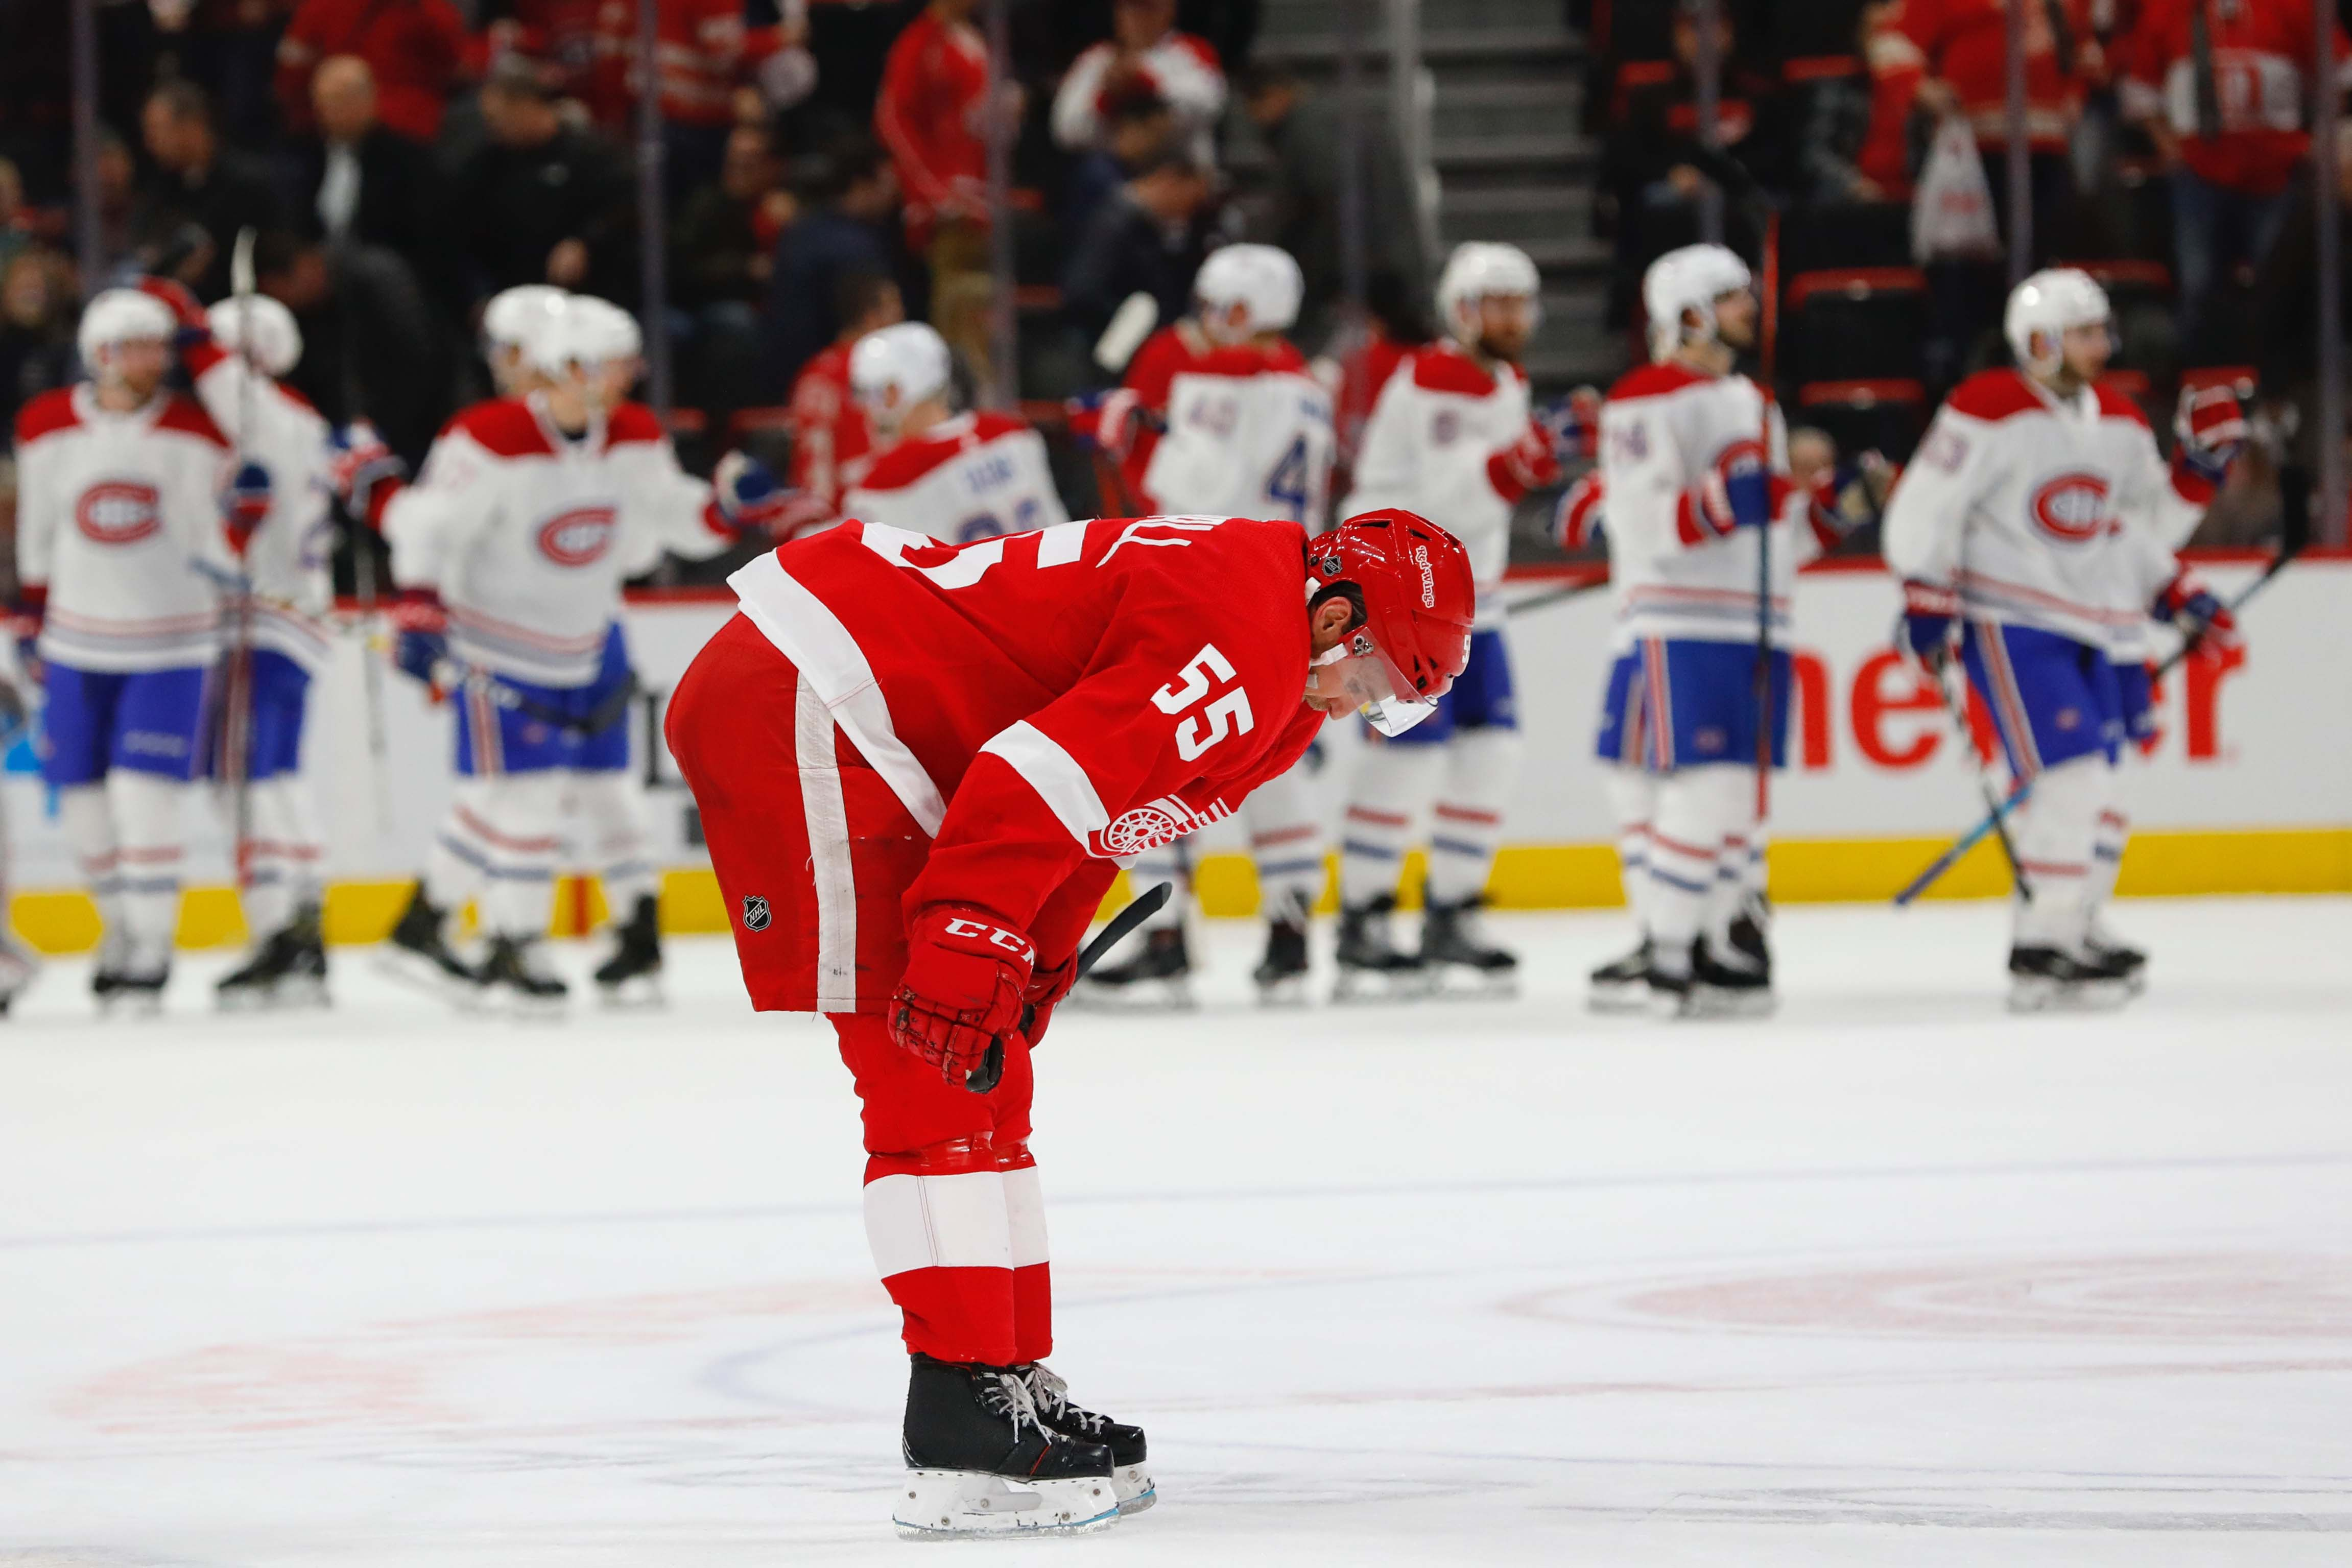 WINGS POST-GAME: Habs Fill Our Net With Lots Of Pucks in 8-1 Loss